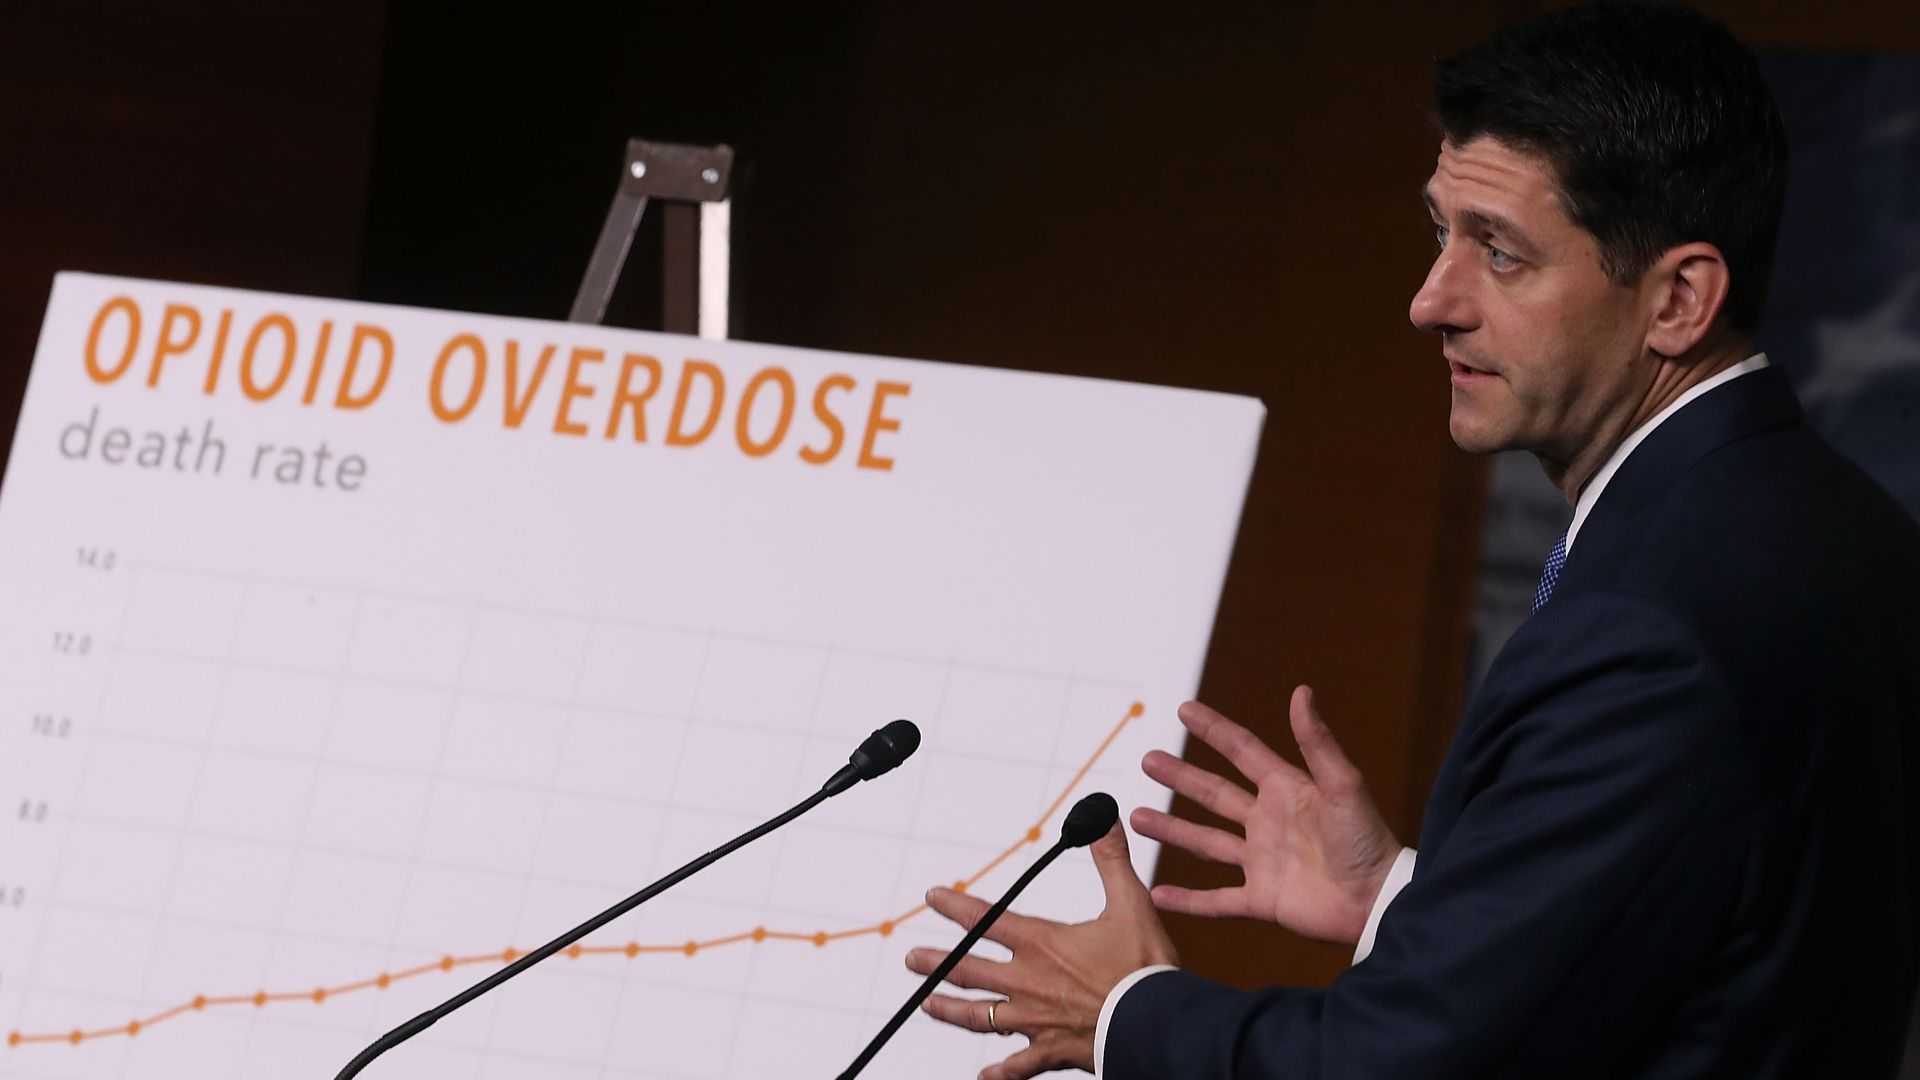 House Speaker Paul Ryan gestures at a chart about opioid overdoses